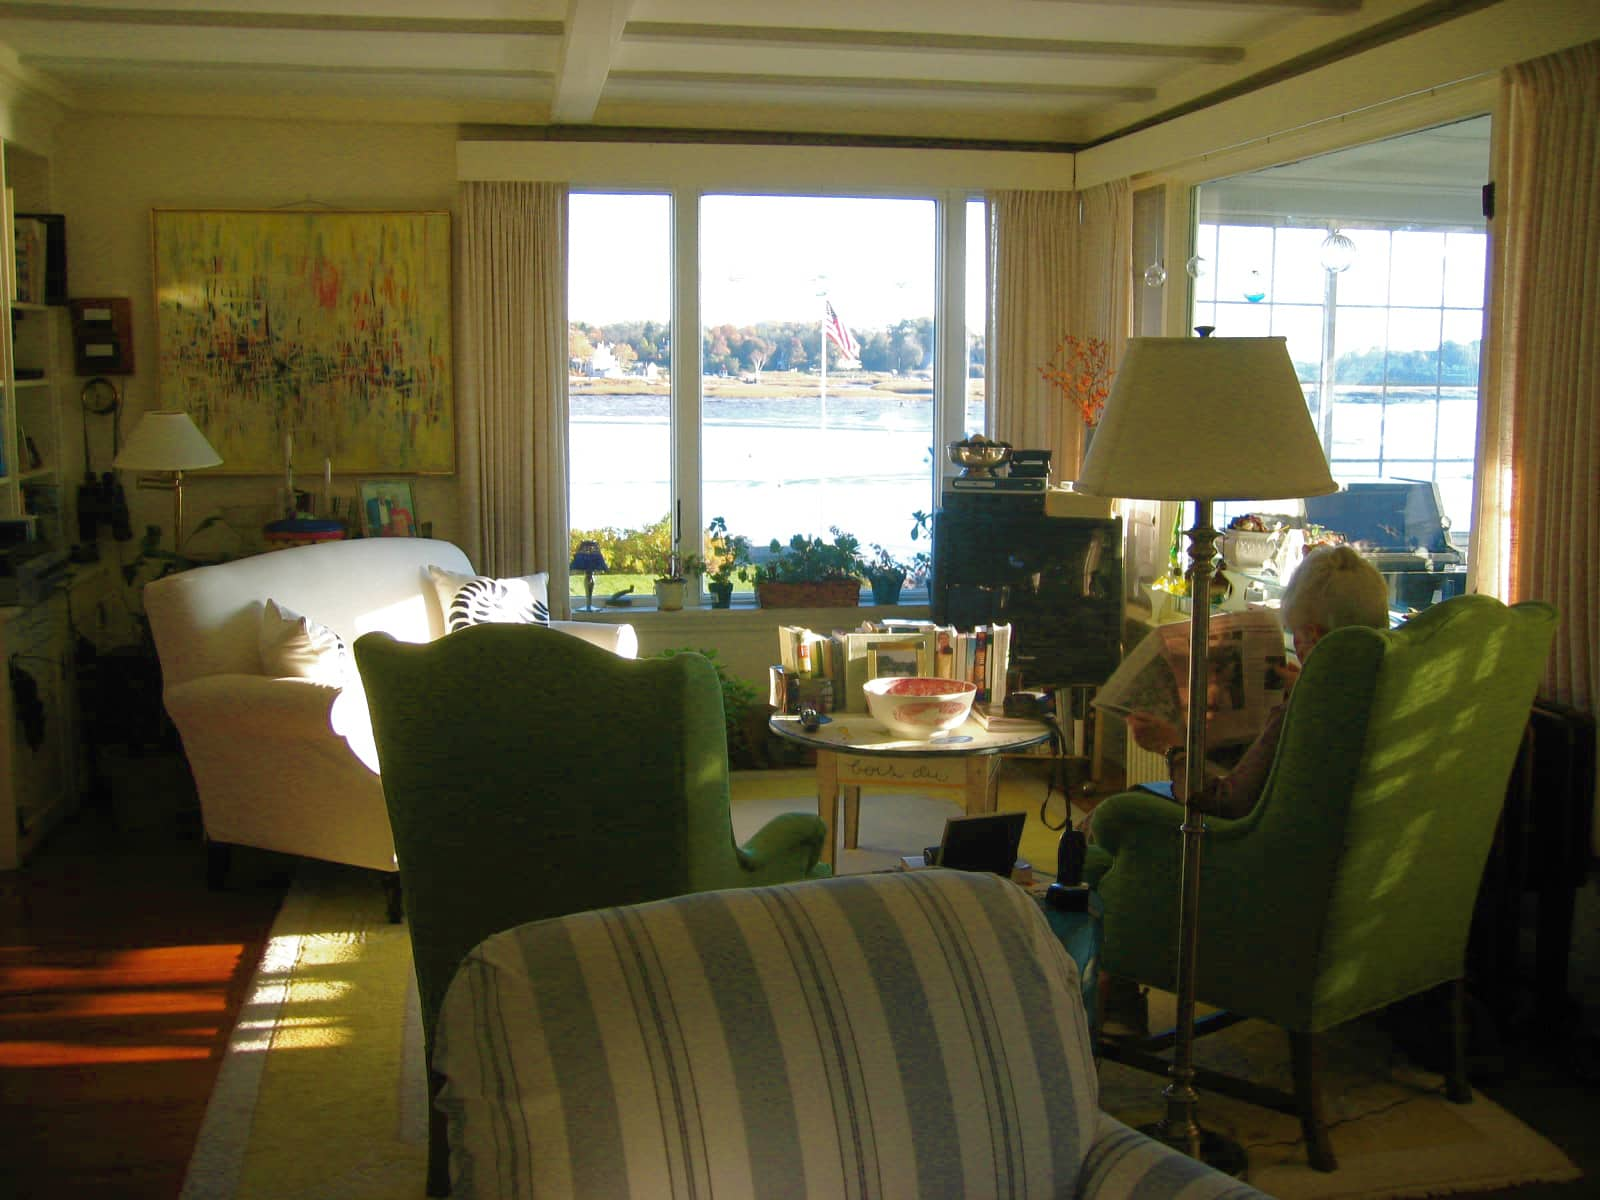 89 Year Old Woman Shares Her Seaside Cottage with AT!: gallery slide thumbnail 17